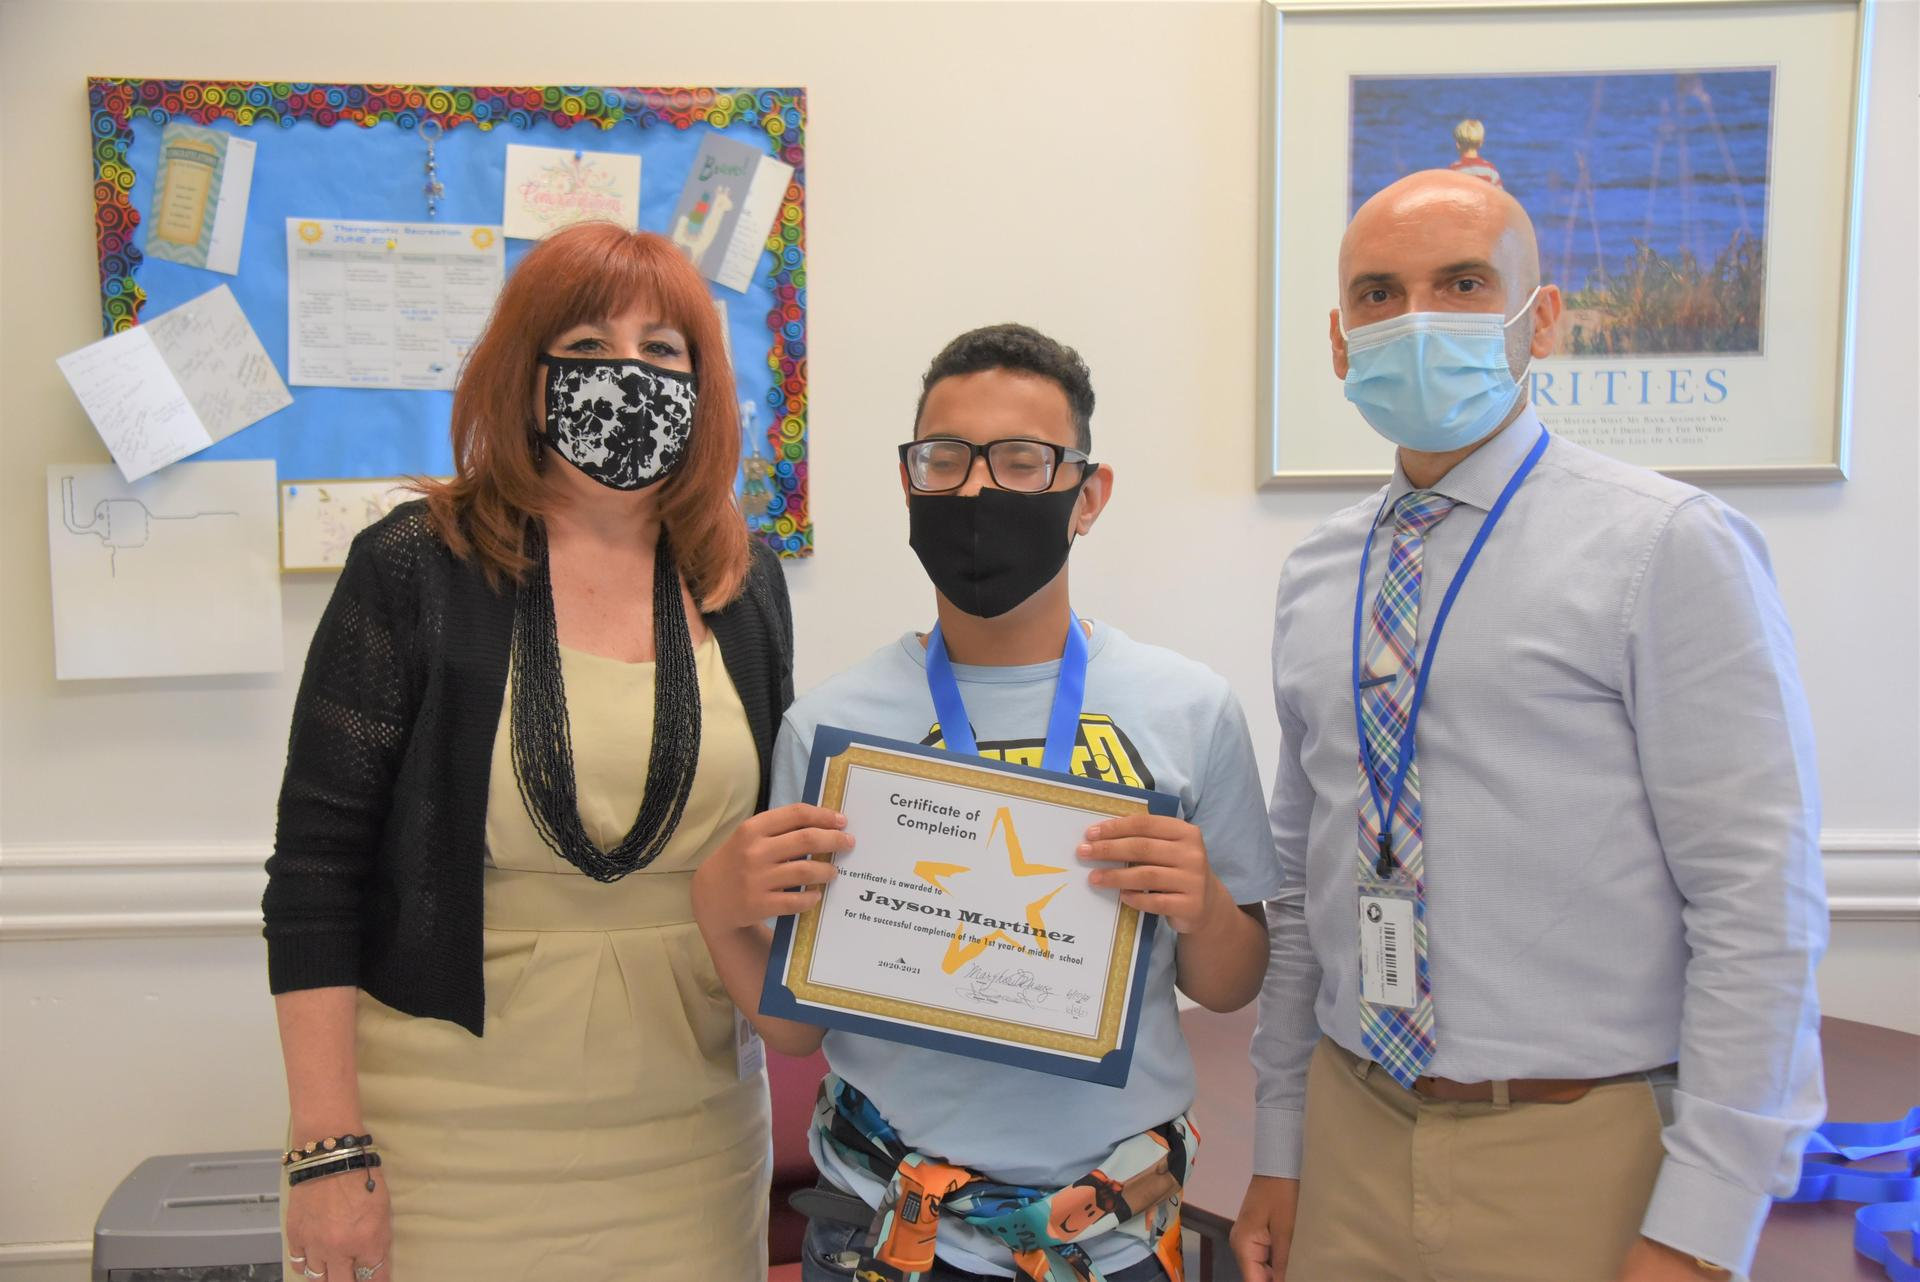 The principal and the Assistant principal stand with a student getting an award in an office